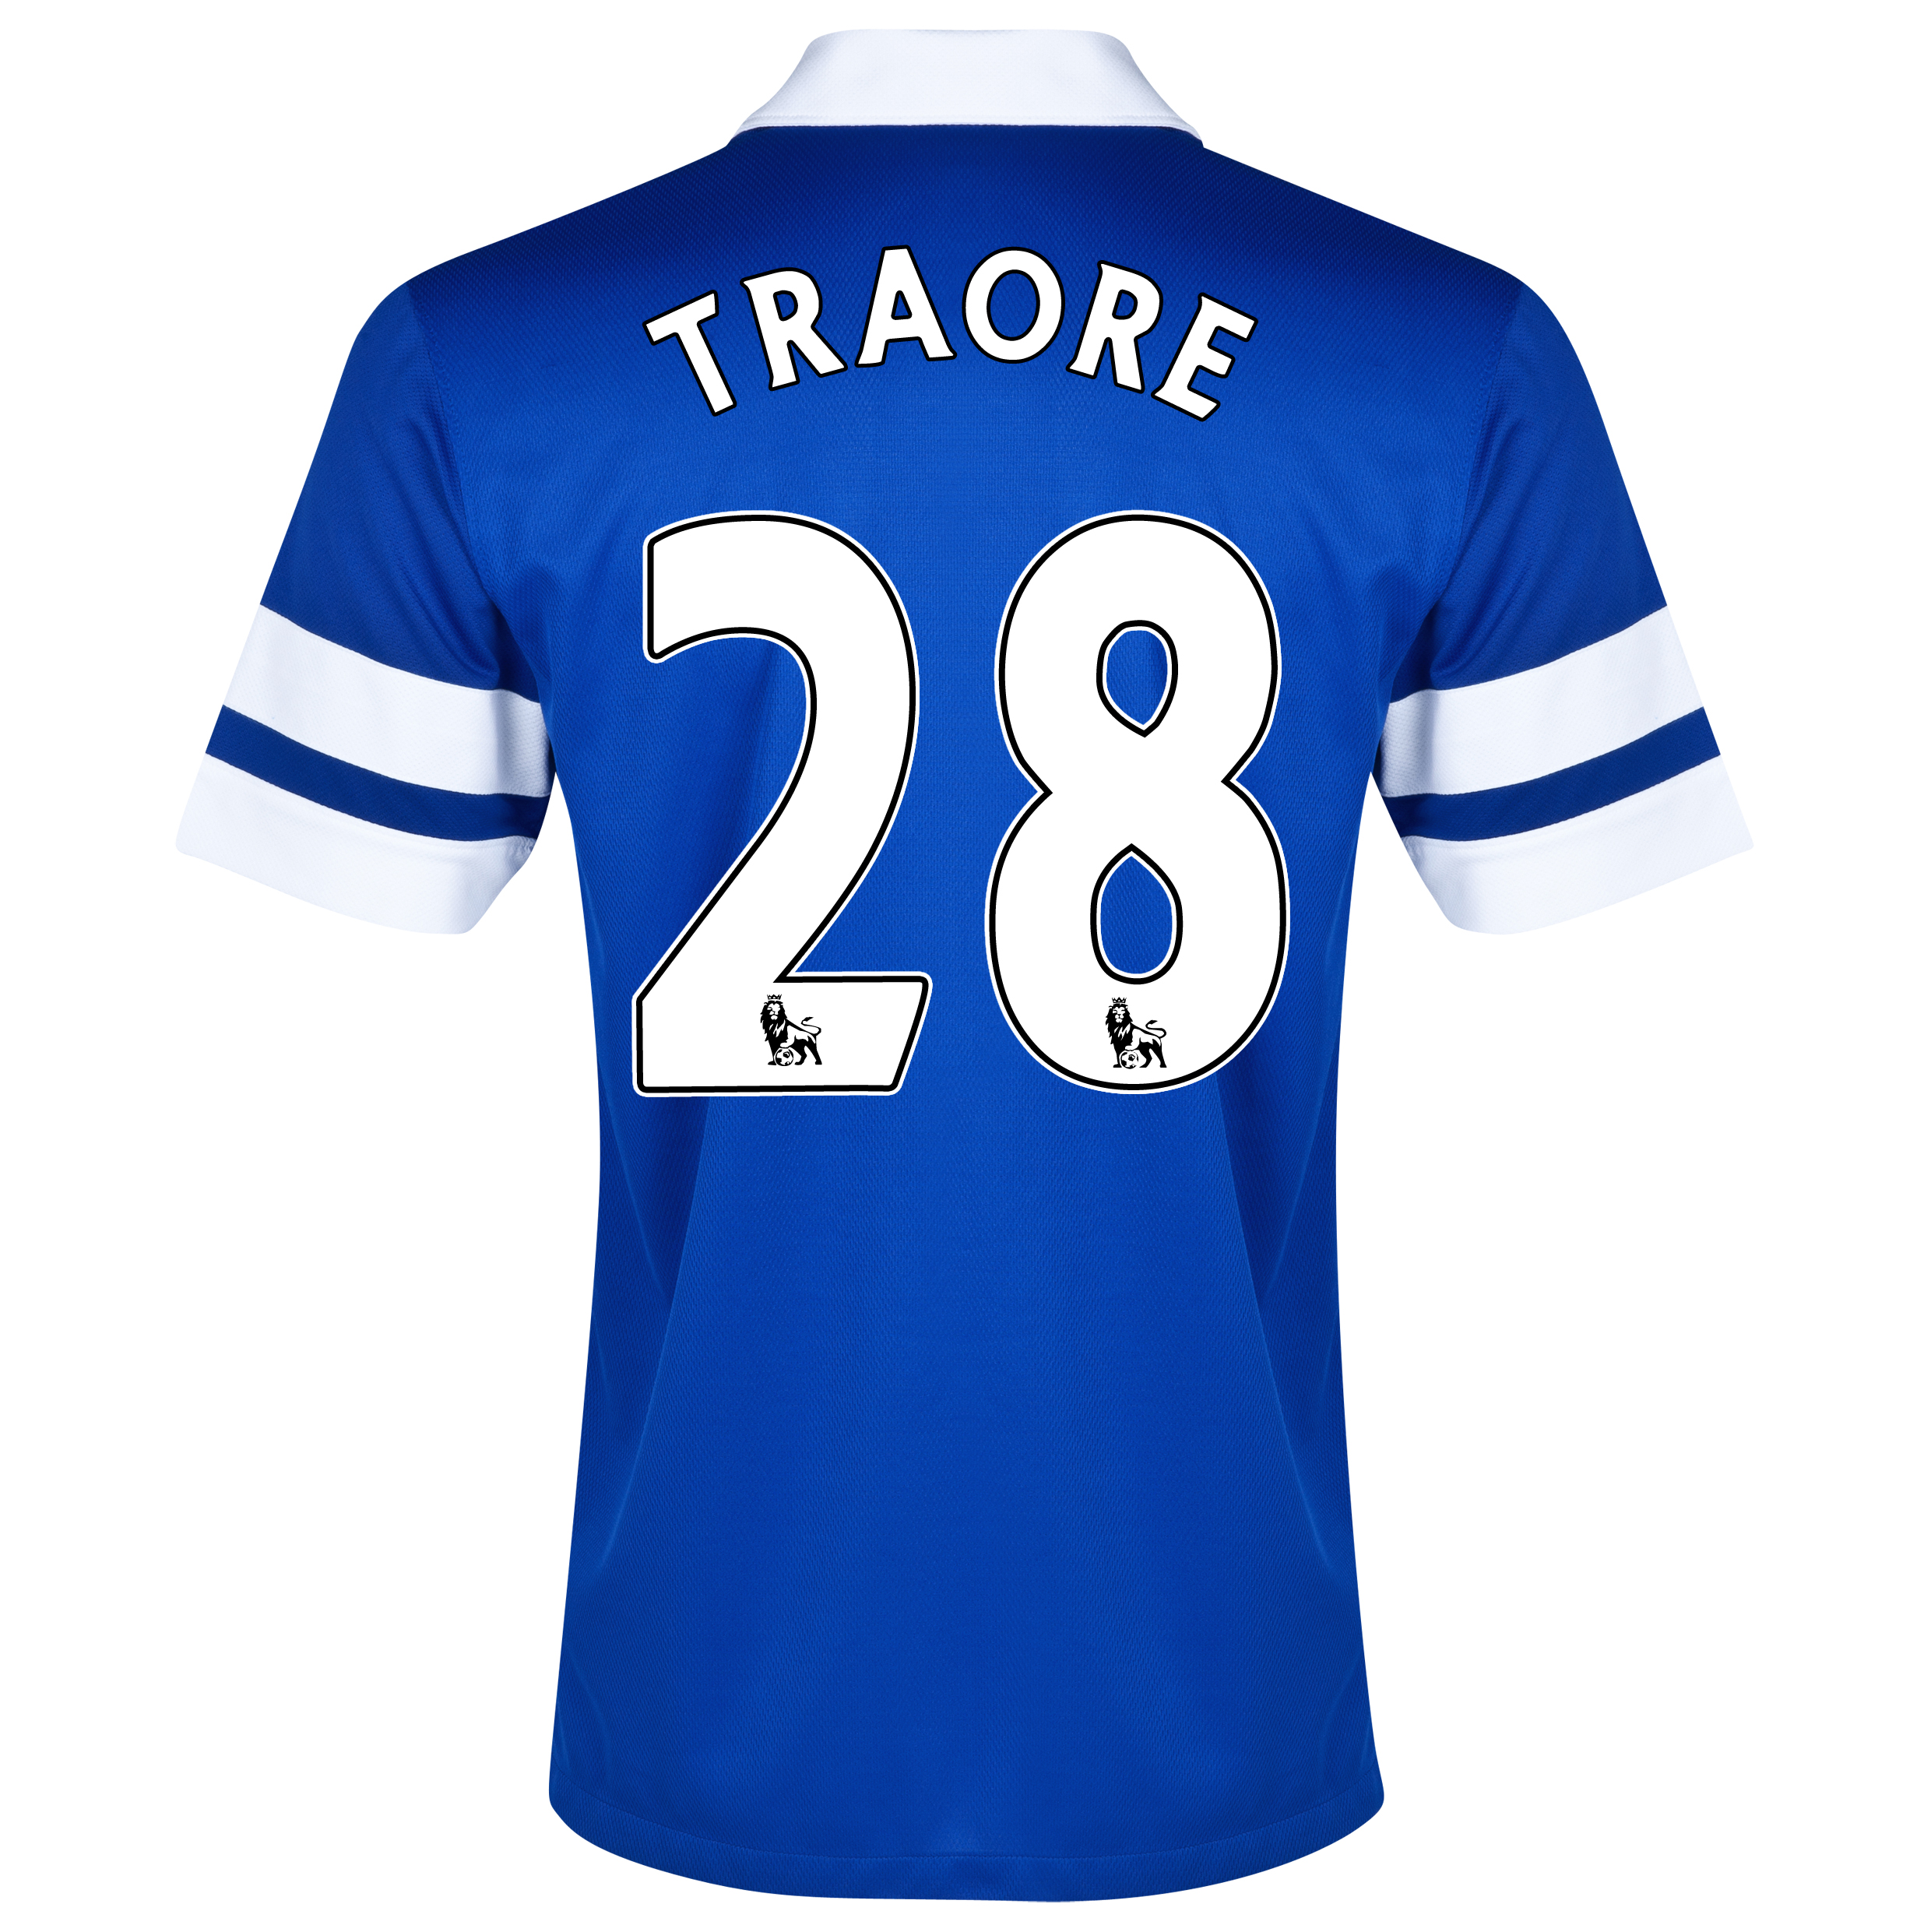 Everton Home Shirt 2013/14 Blue with Traore 28 printing